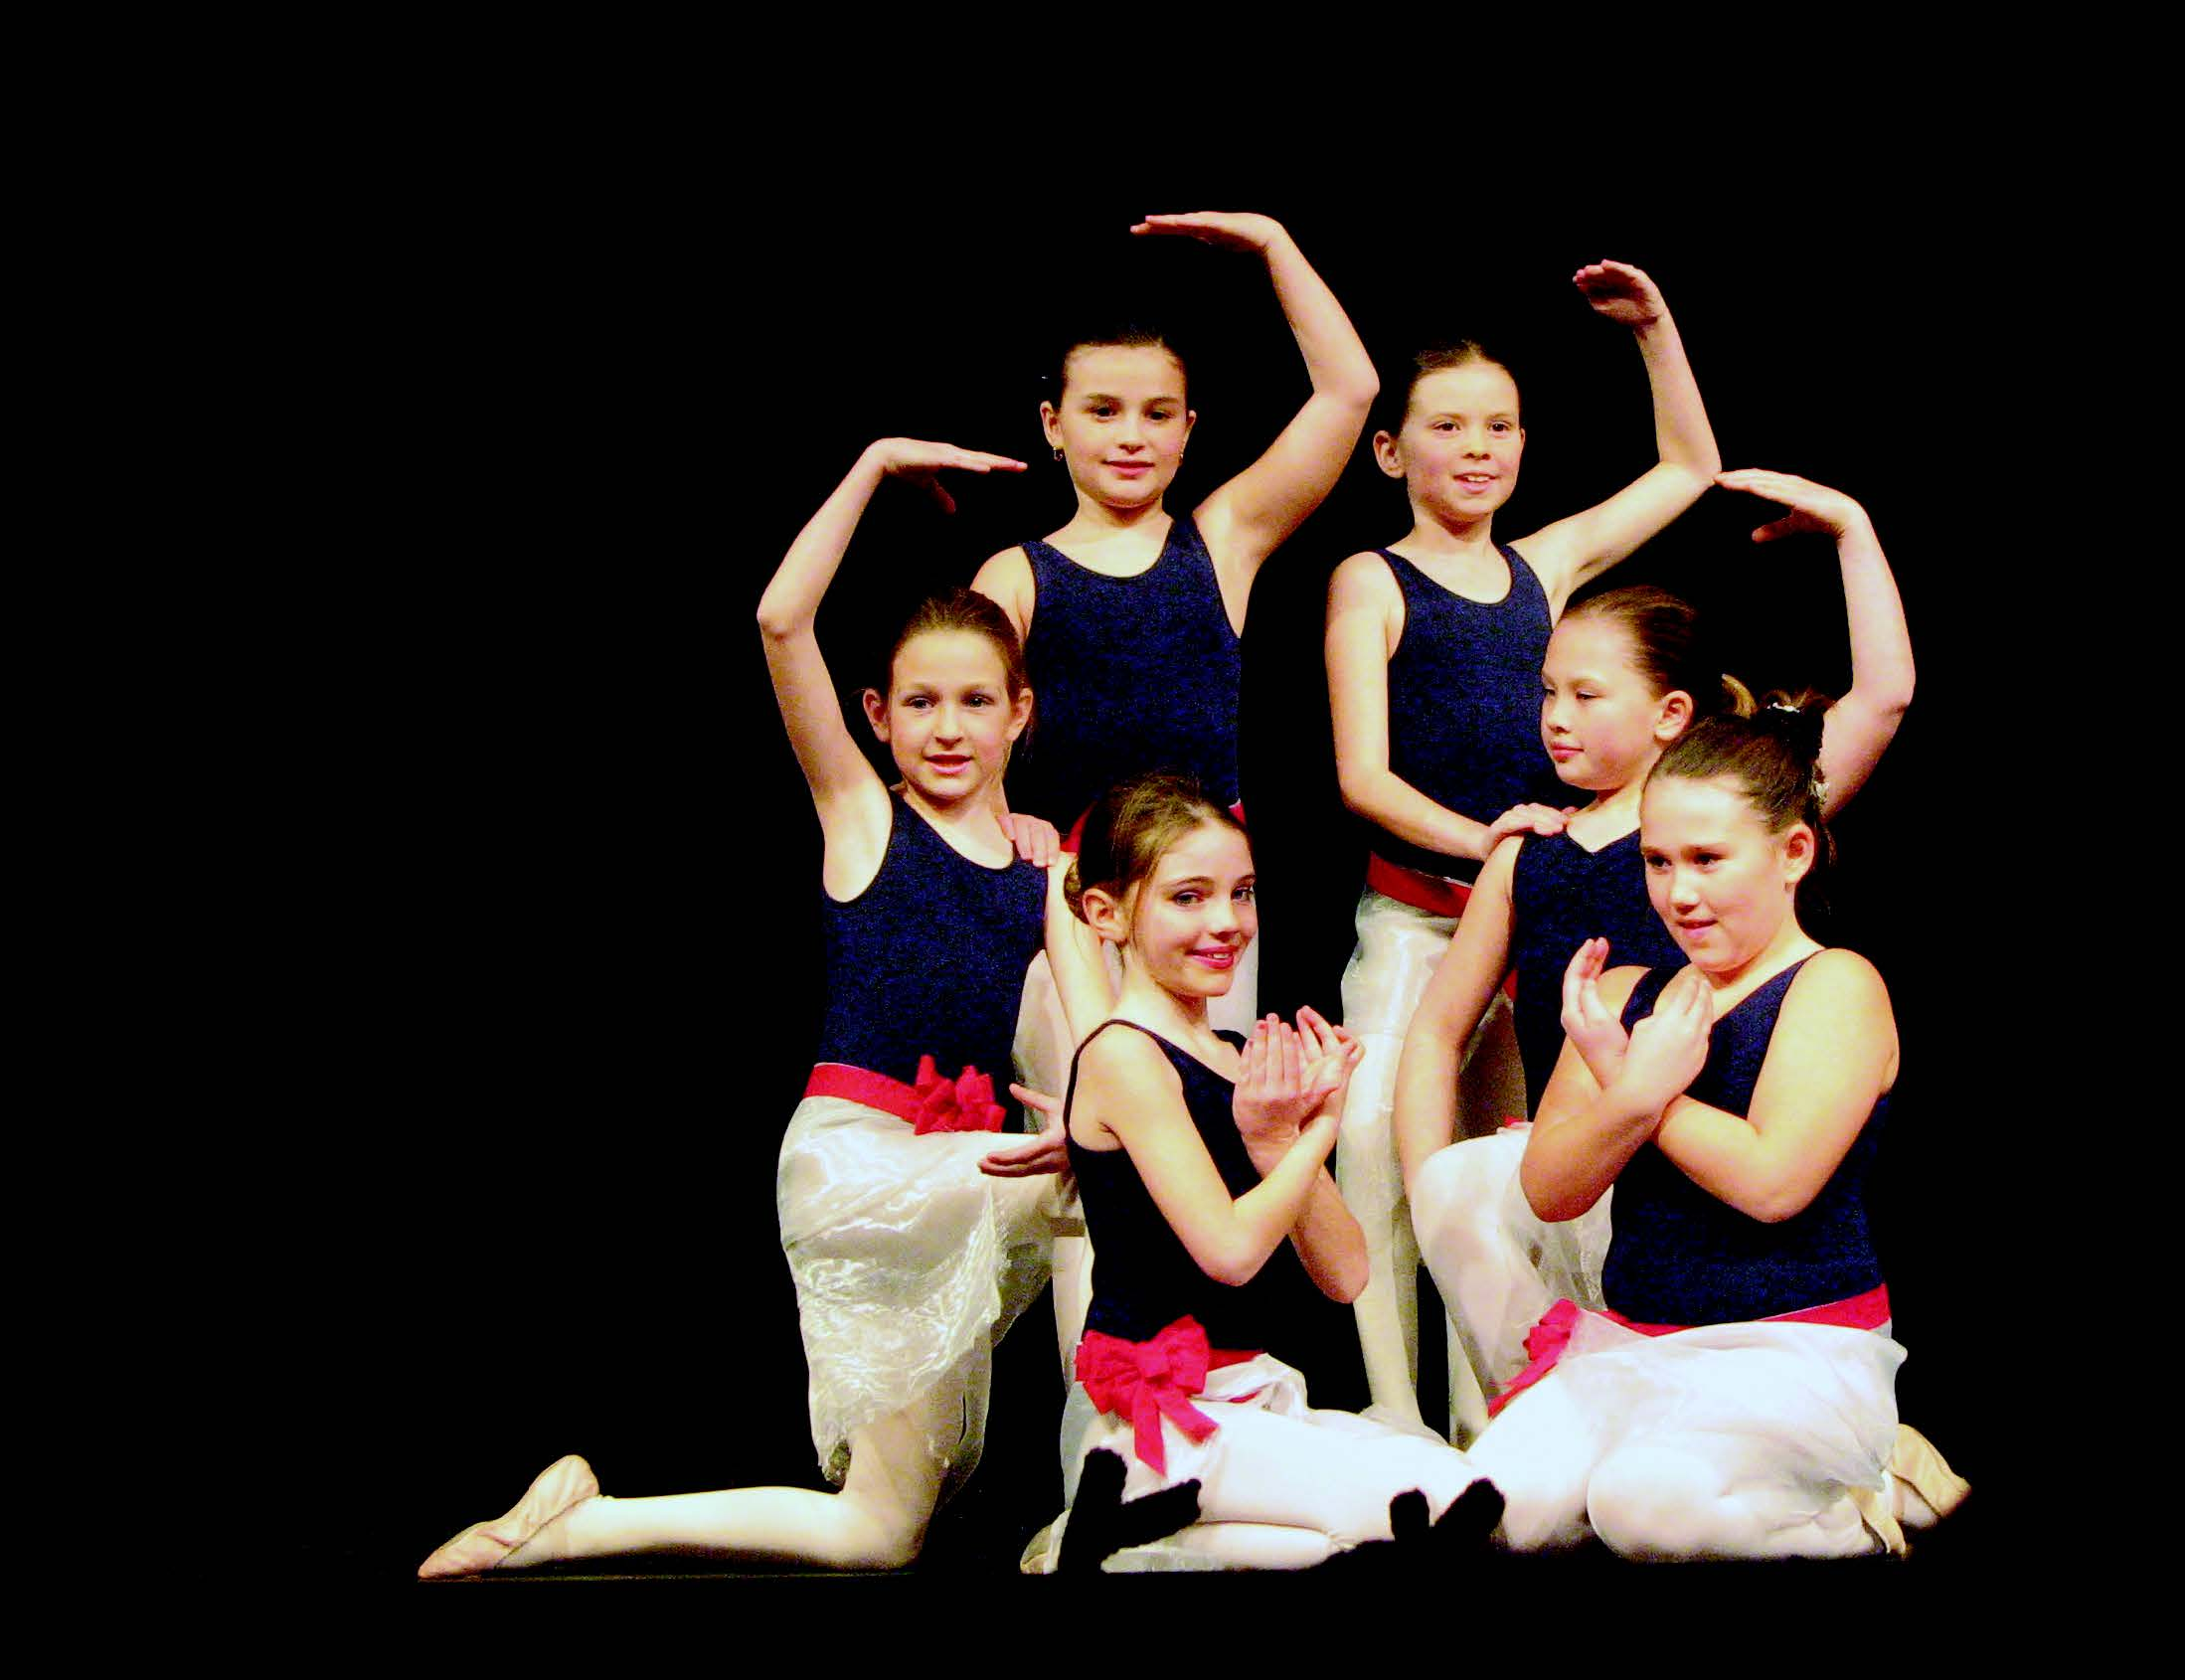 Minto Dance Academy students perform at a demonstration event from Christmas past. Kelly Lenselink photo